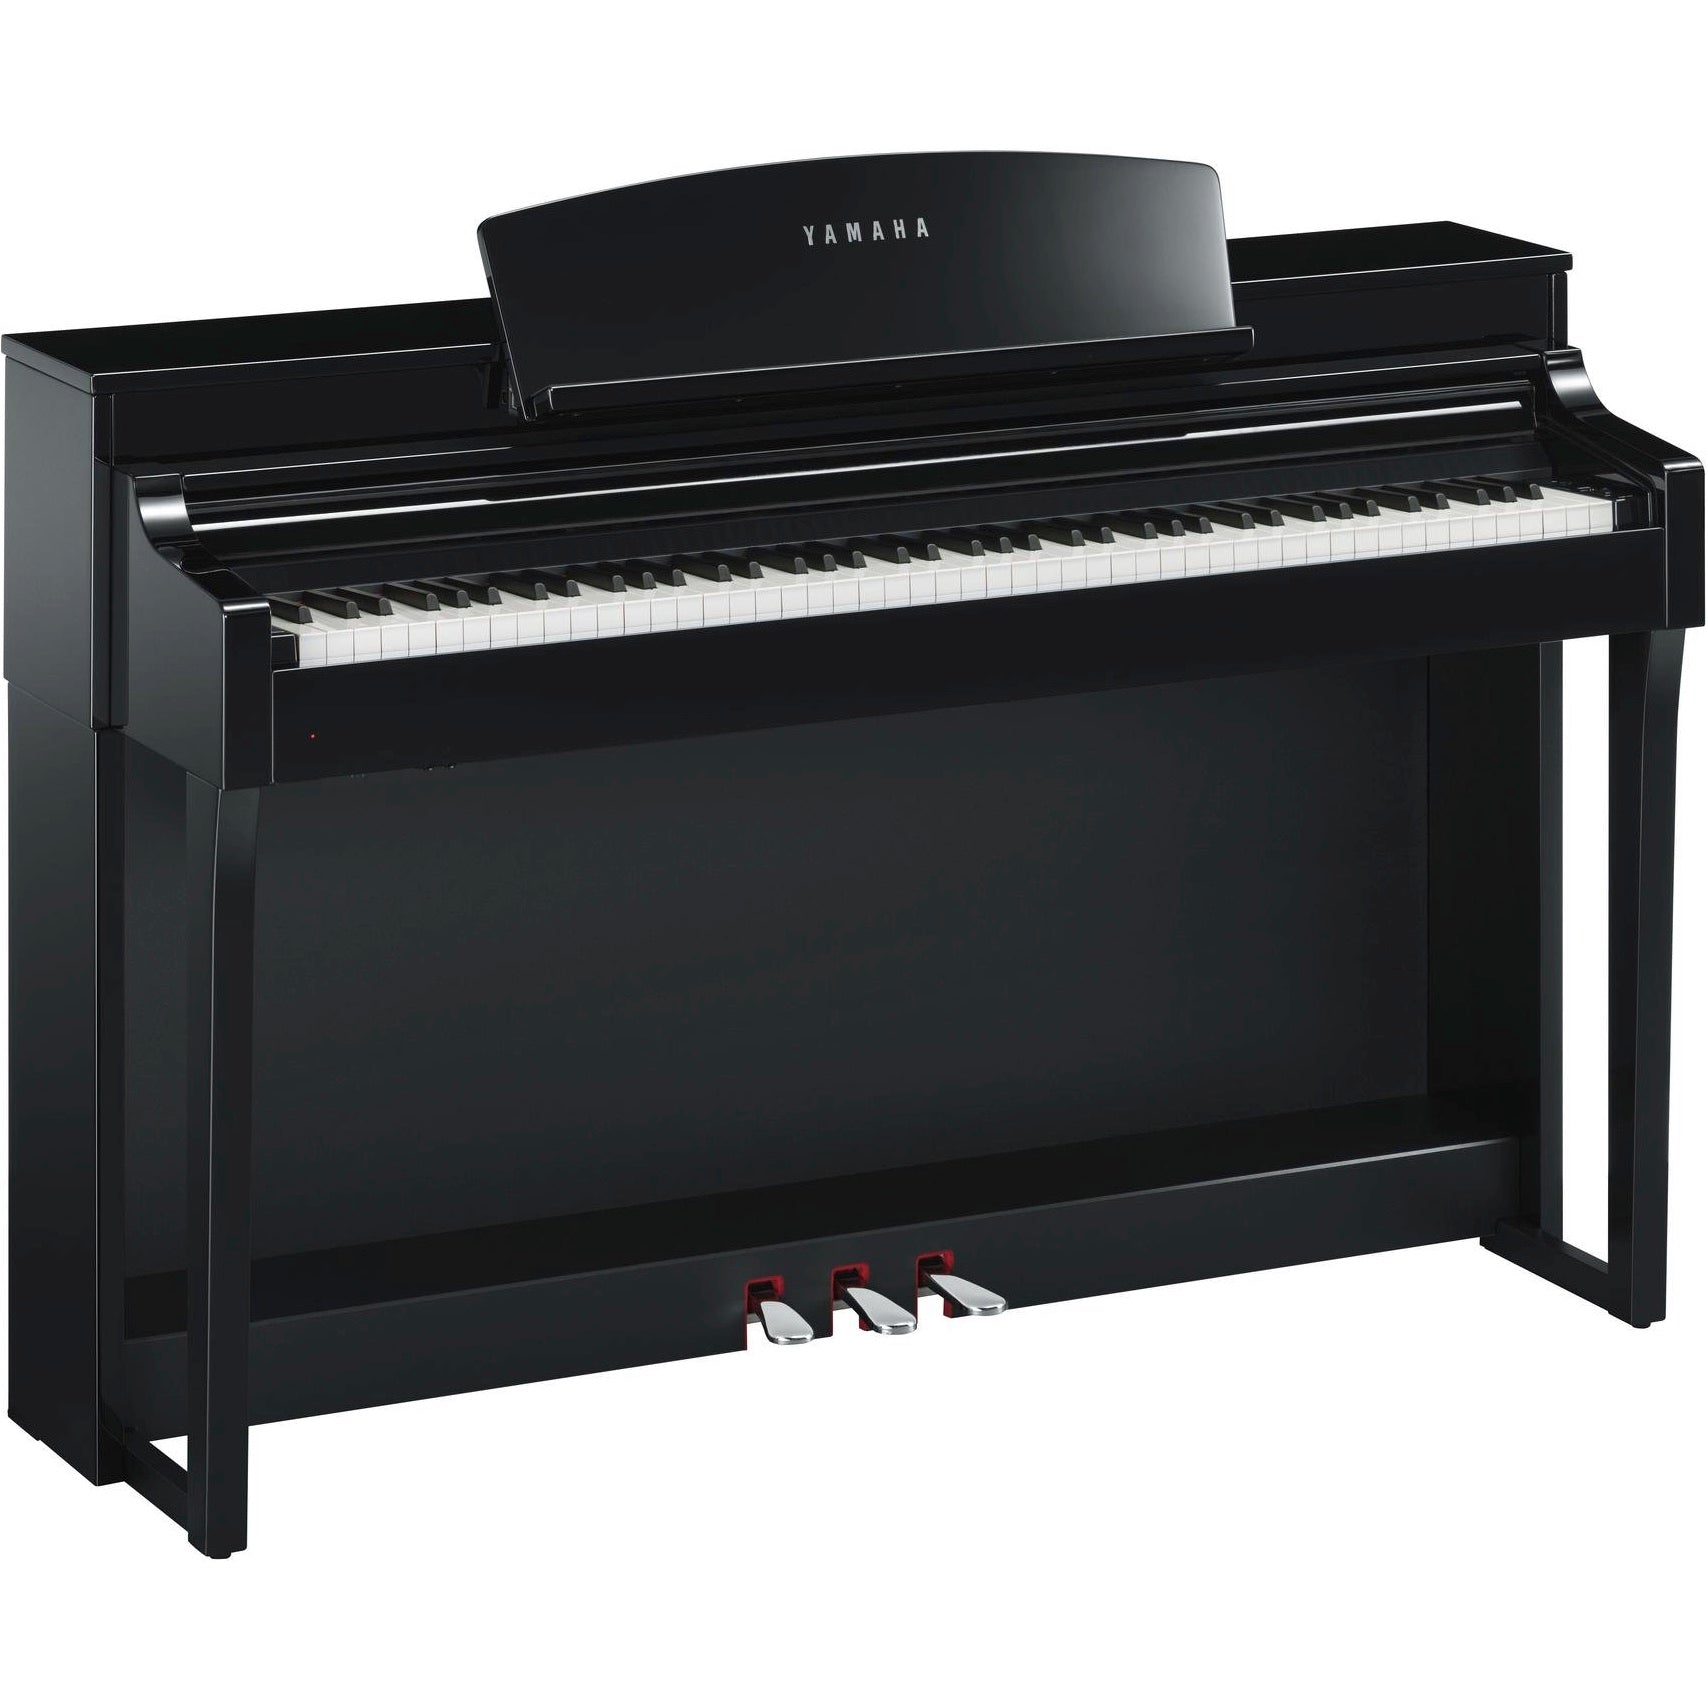 Yamaha Clavinova CSP-150 Digital Smart Piano Polished Ebony | Music Experience | Shop Online | South Africa